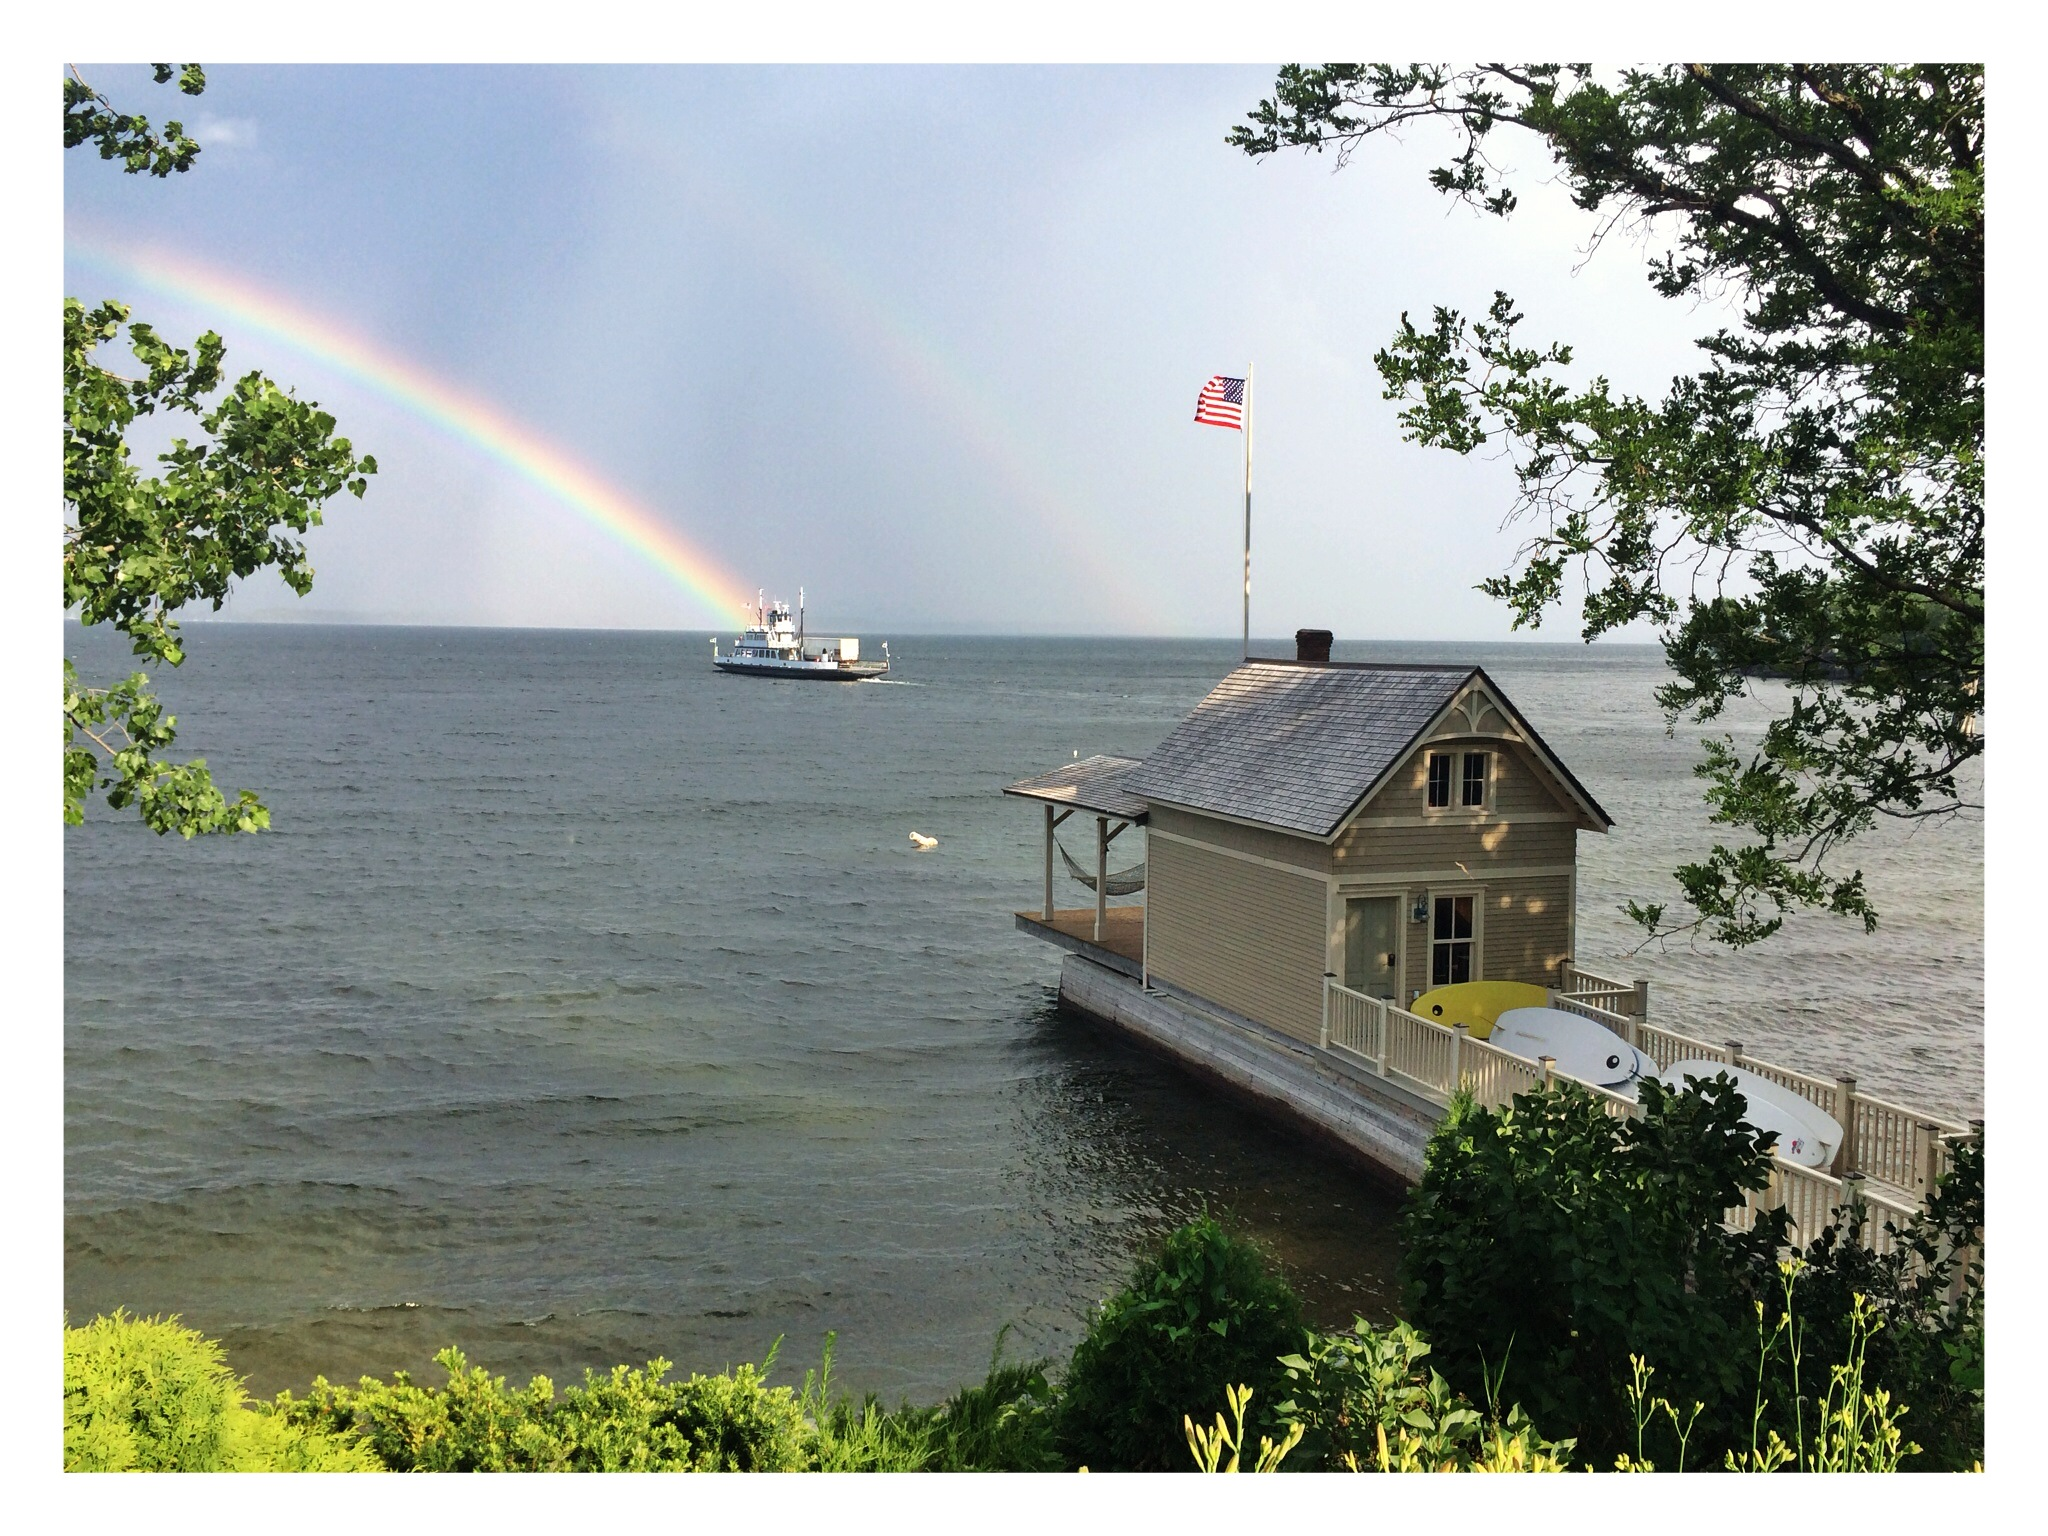 Boathouse, Ferry & Rainbow